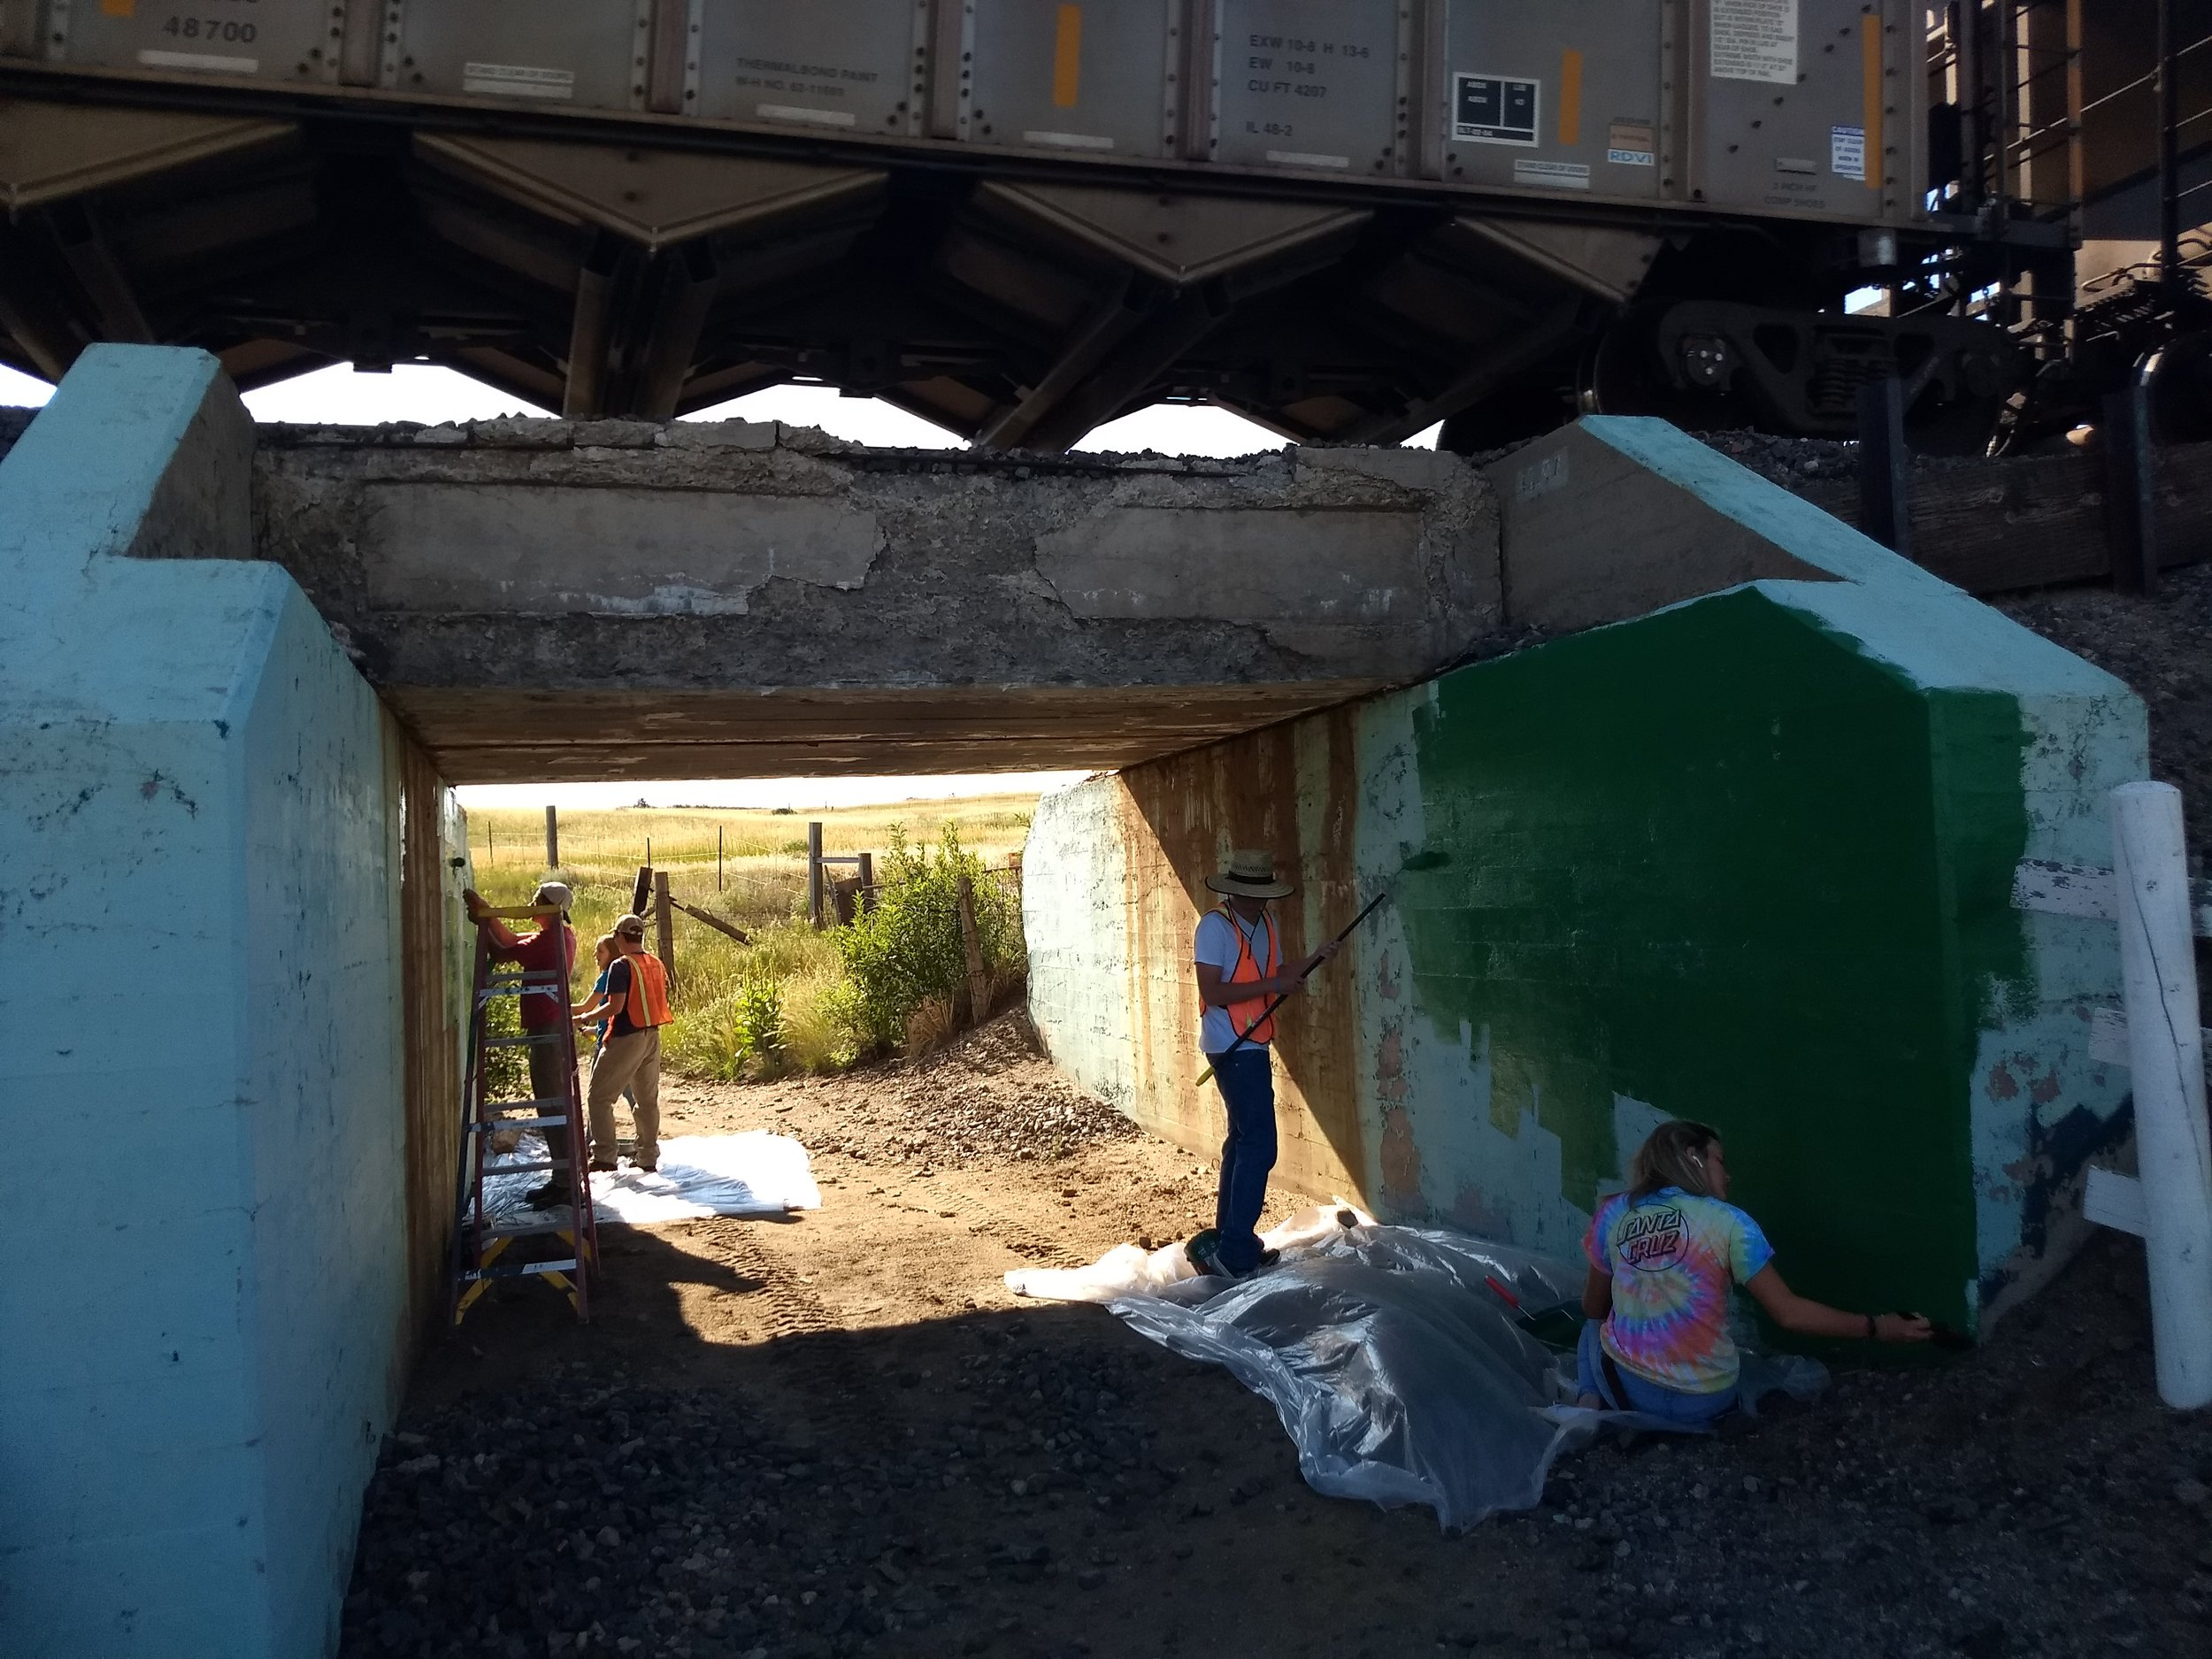 A train passing overhead while the team is painting.